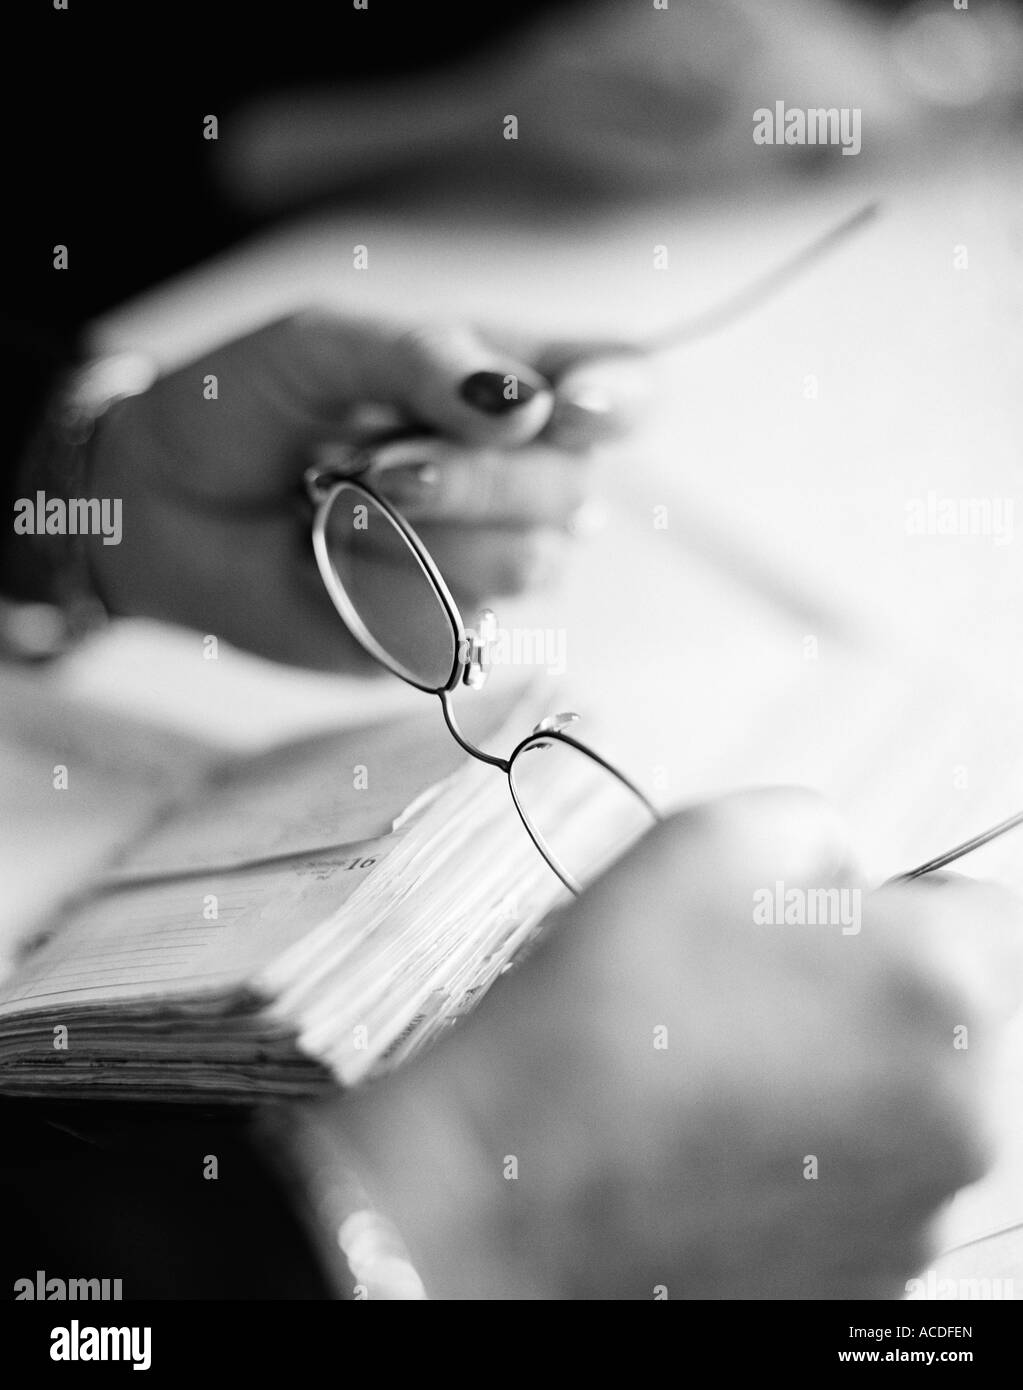 Female hands holding a pair of glasses close-up BW. - Stock Image